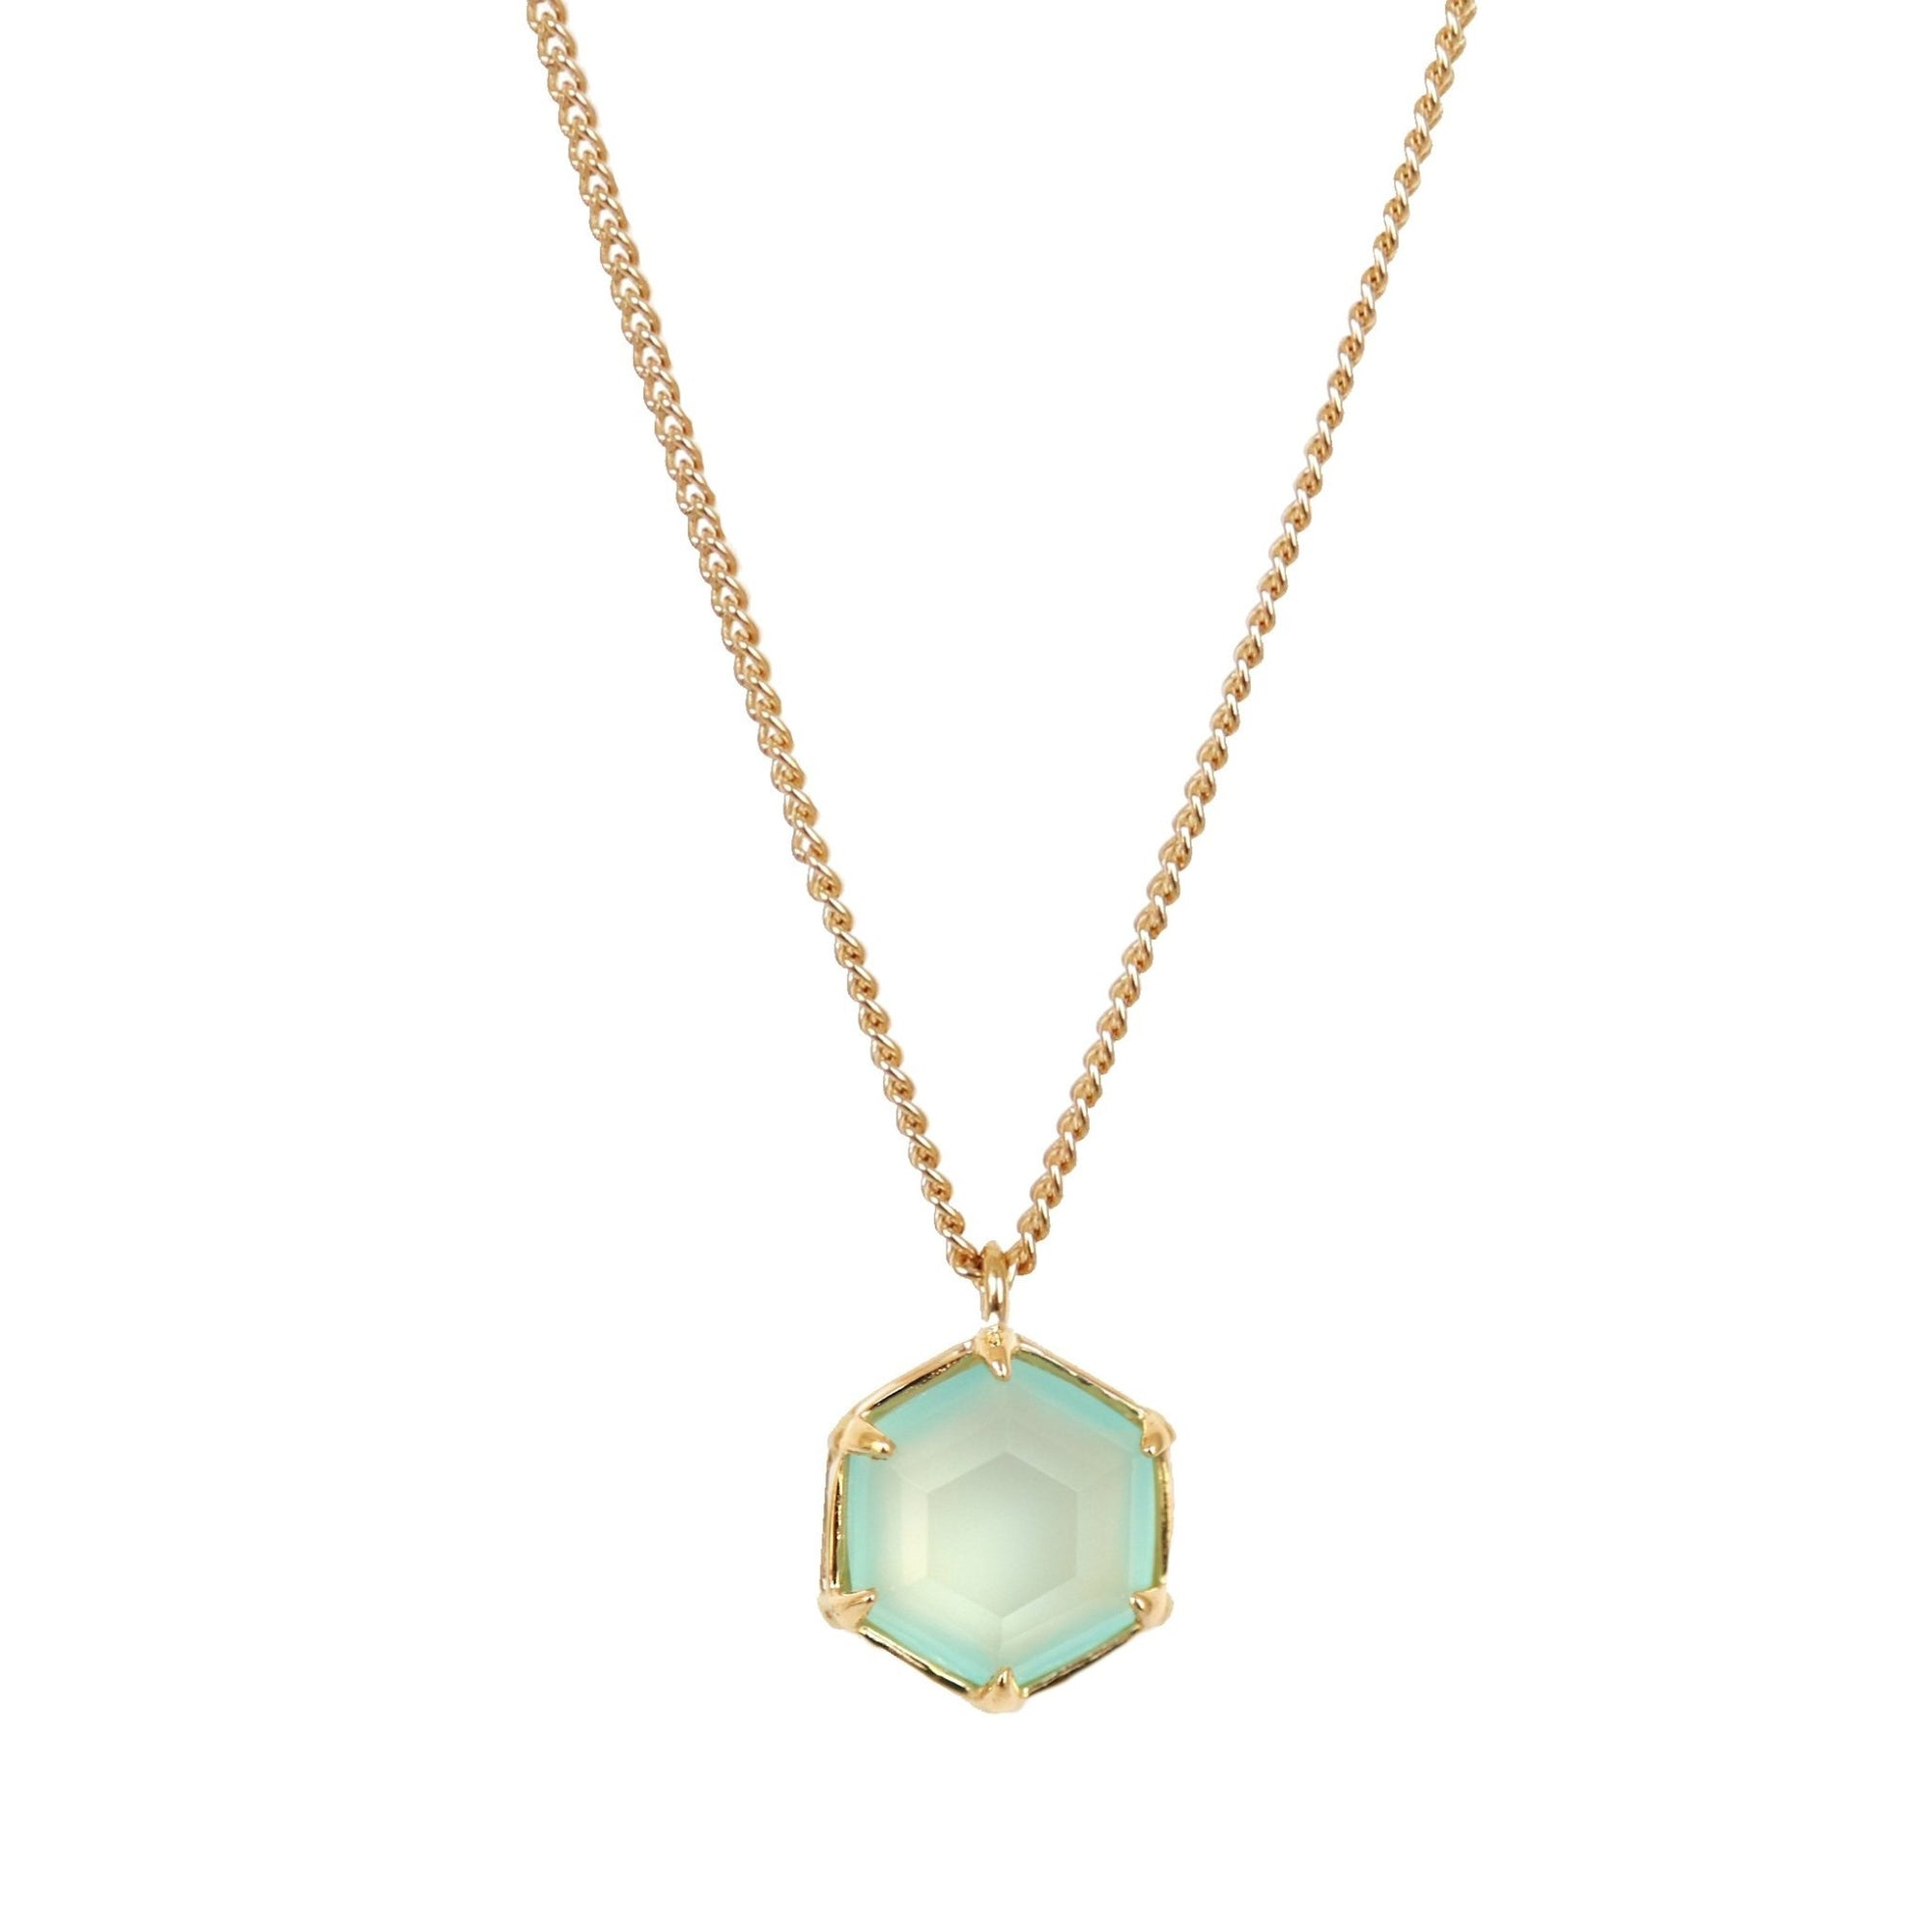 GRACE REVERSIBLE NECKLACE - AQUA CHALCEDONY & GOLD - SO PRETTY CARA COTTER